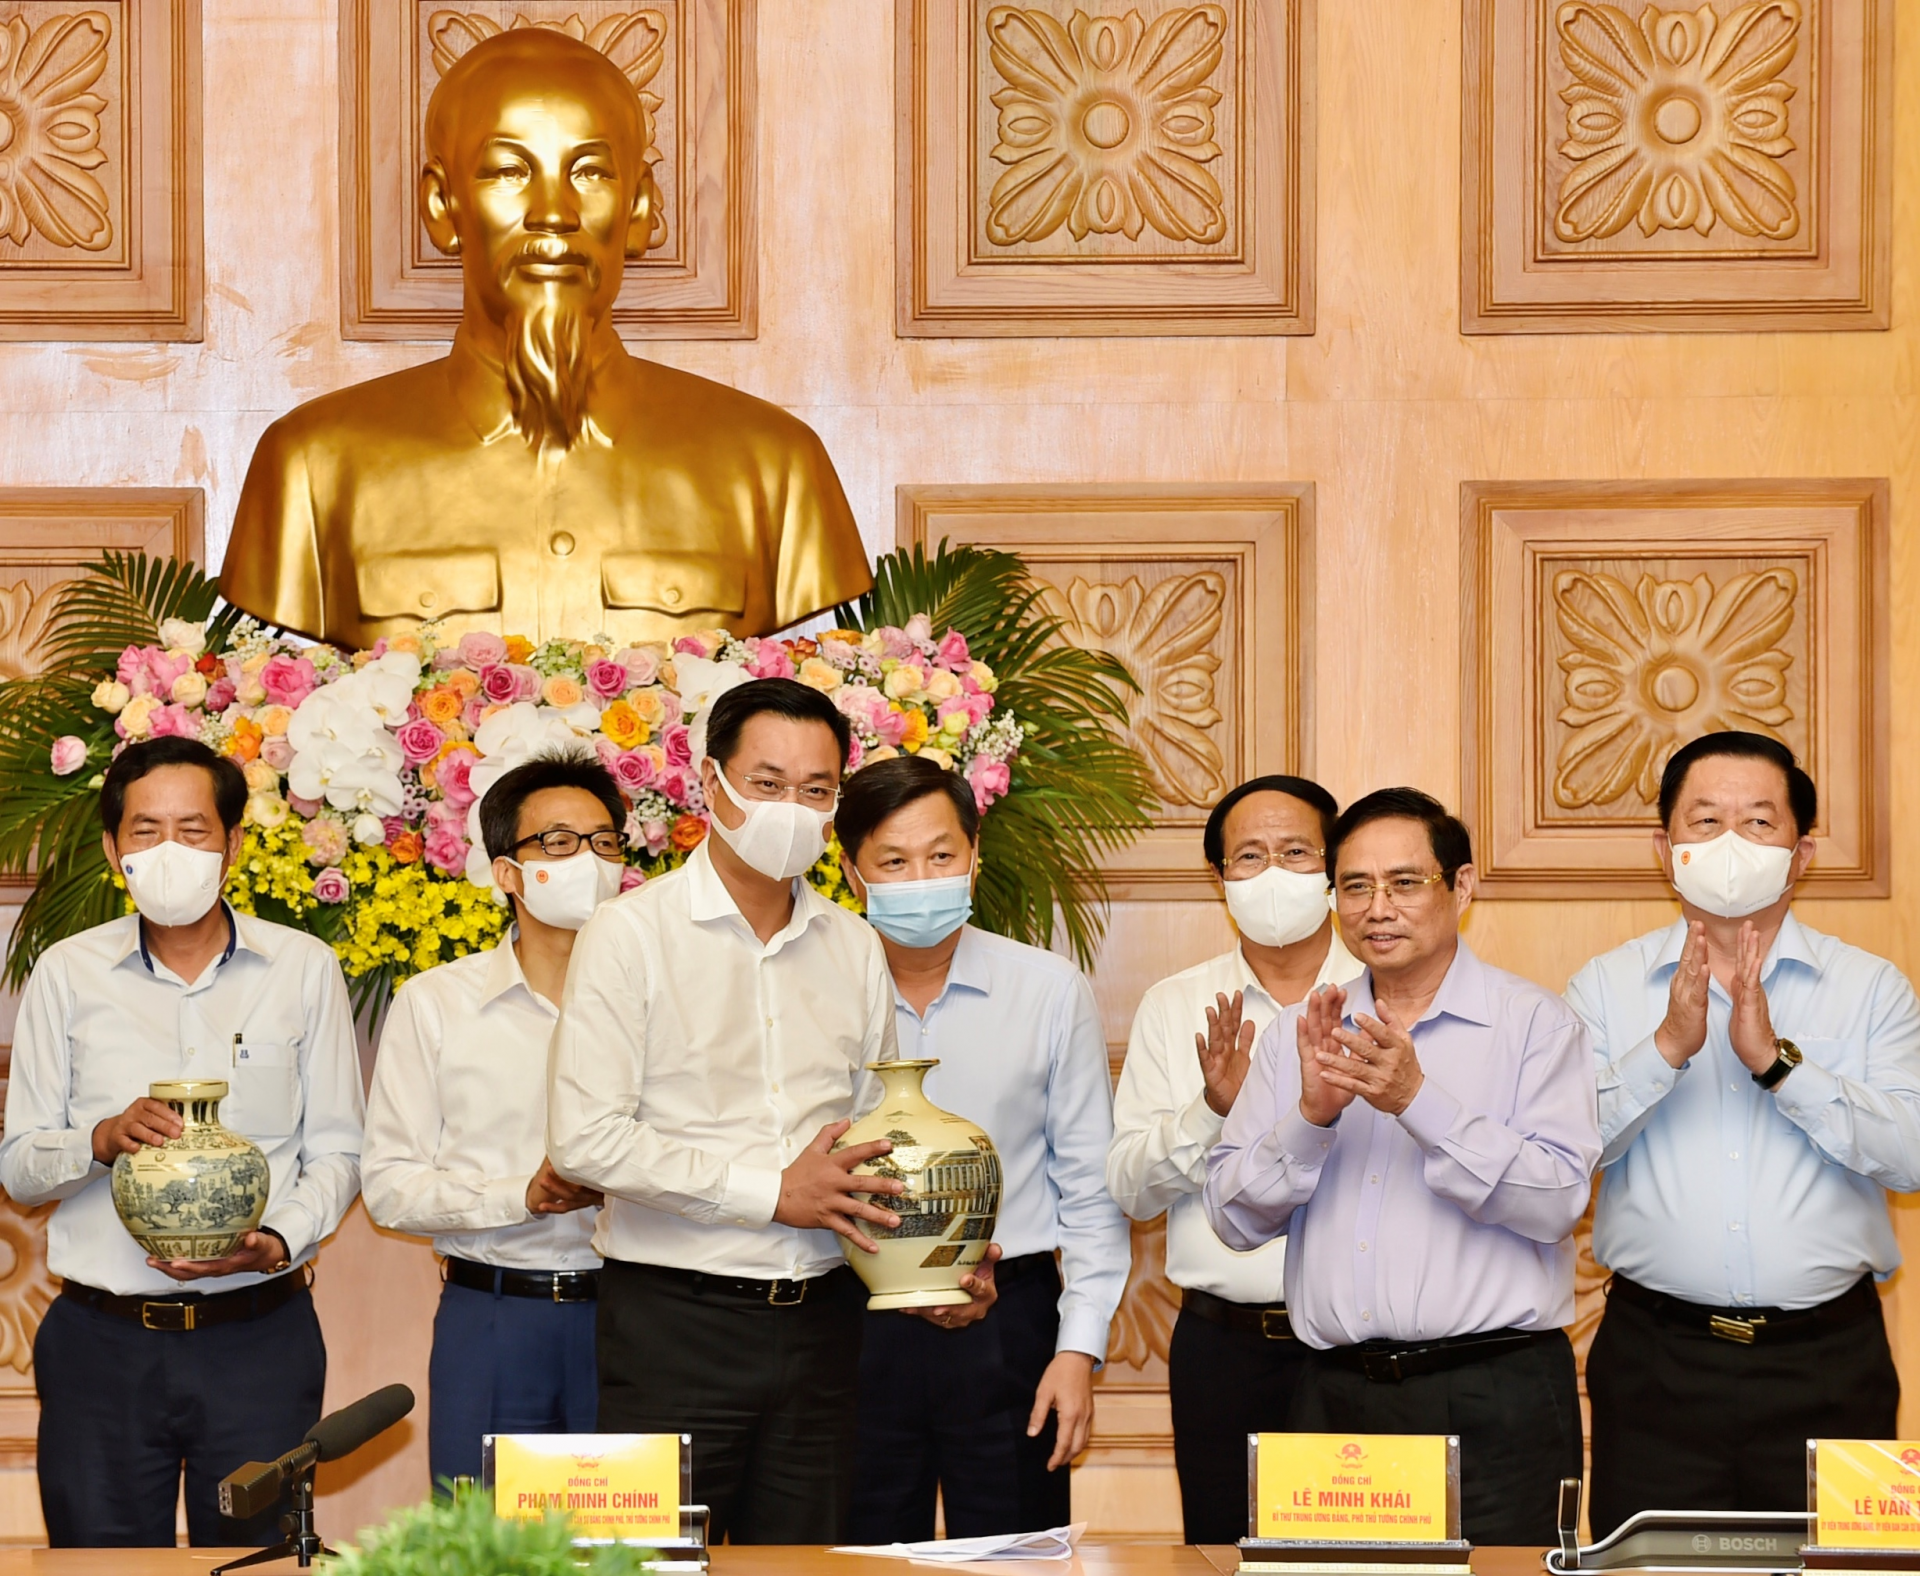 Prime Minister Pham Minh Chinh presents gifts to press agencies at the meeting. - Photo: VGP